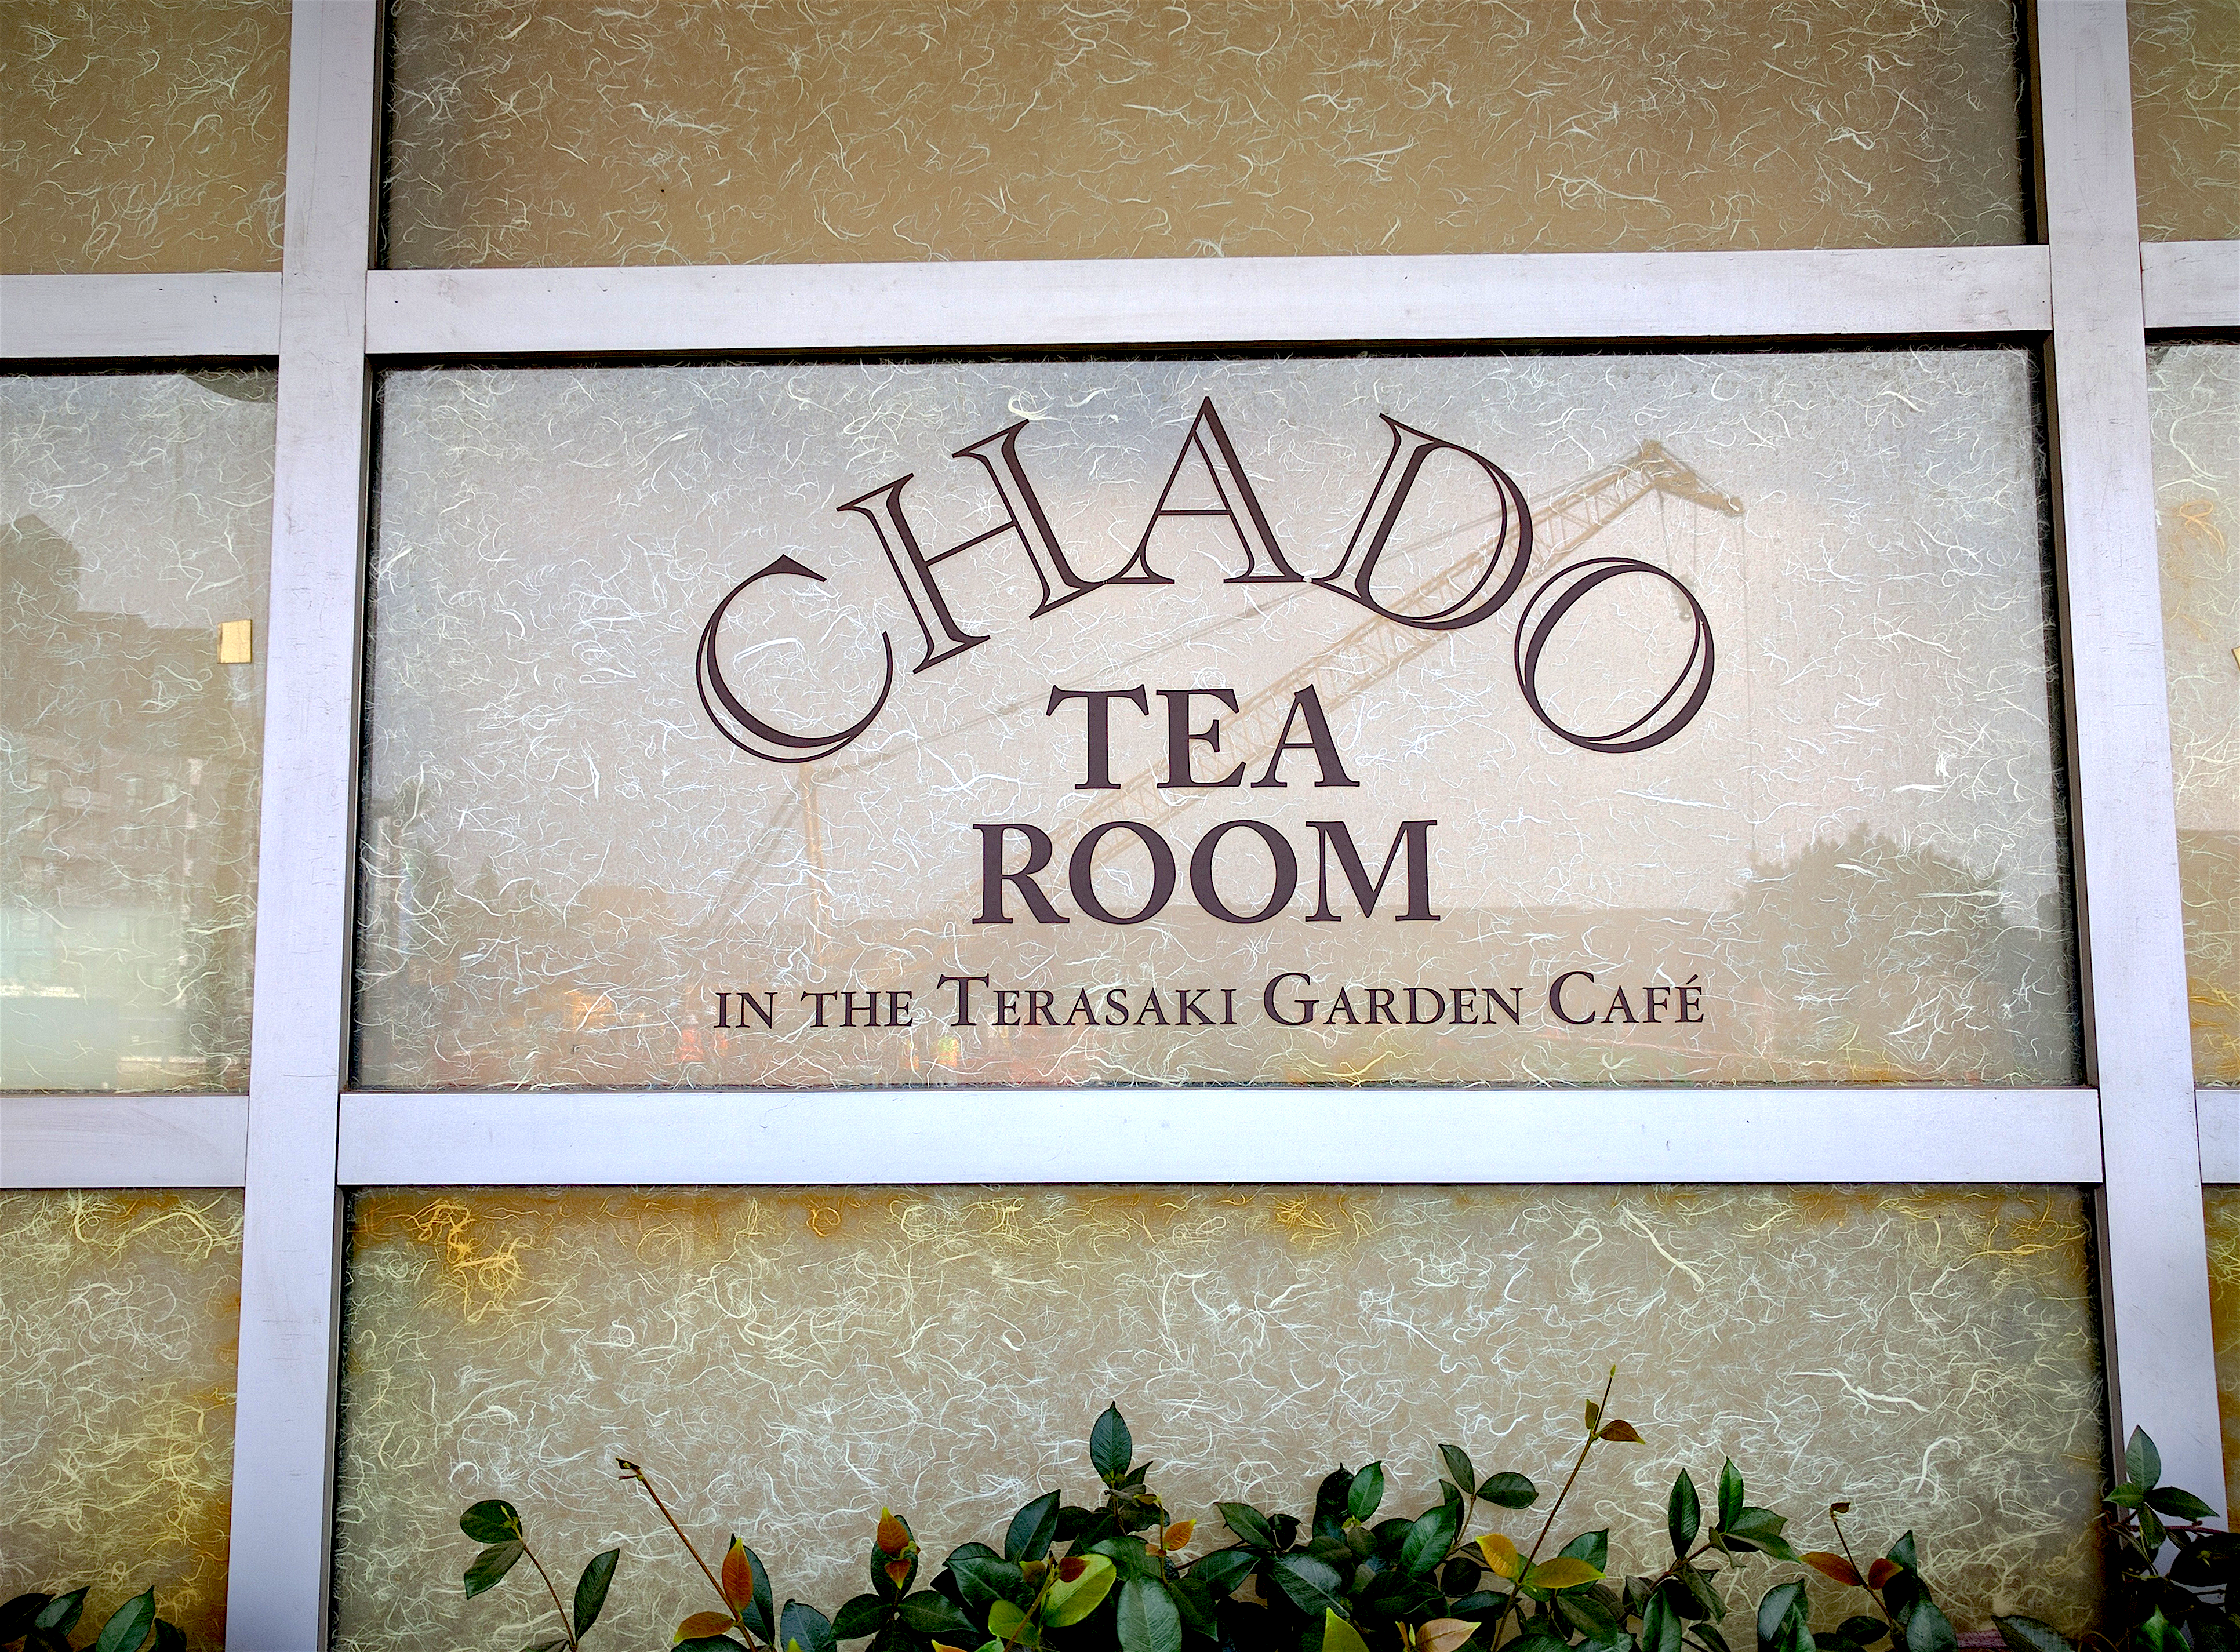 Tea Excursion: Los Angeles ~ Chado Tea Room by Jocilyn Mors is licensed under a Creative Commons Attribution-ShareAlike 4.0 International License.